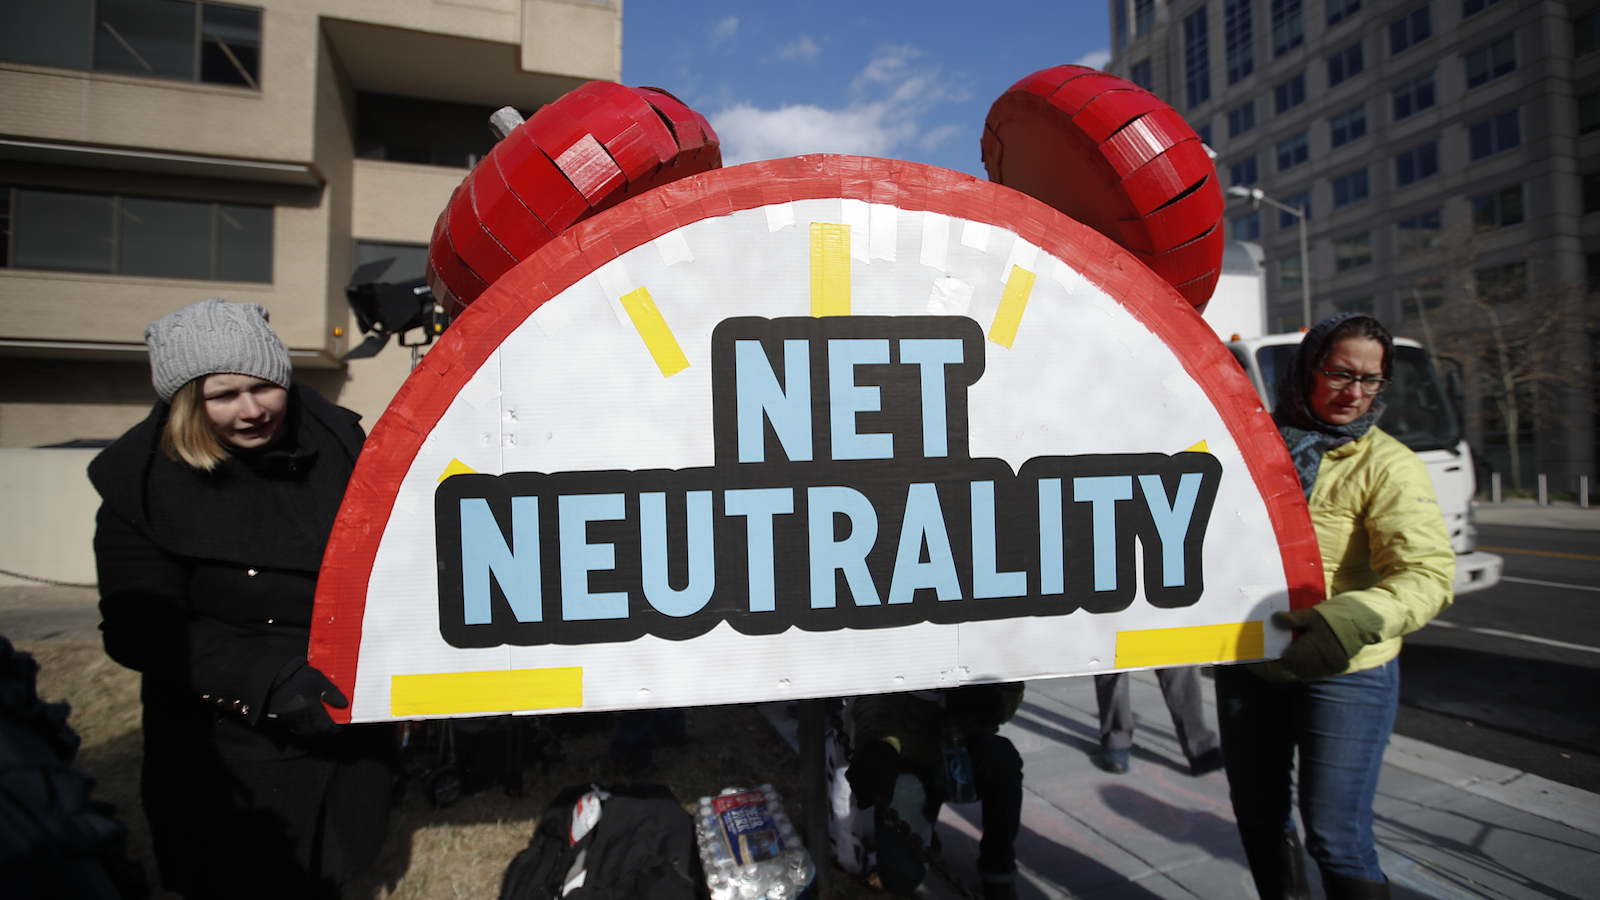 Net neutrality rules officially repealed in US